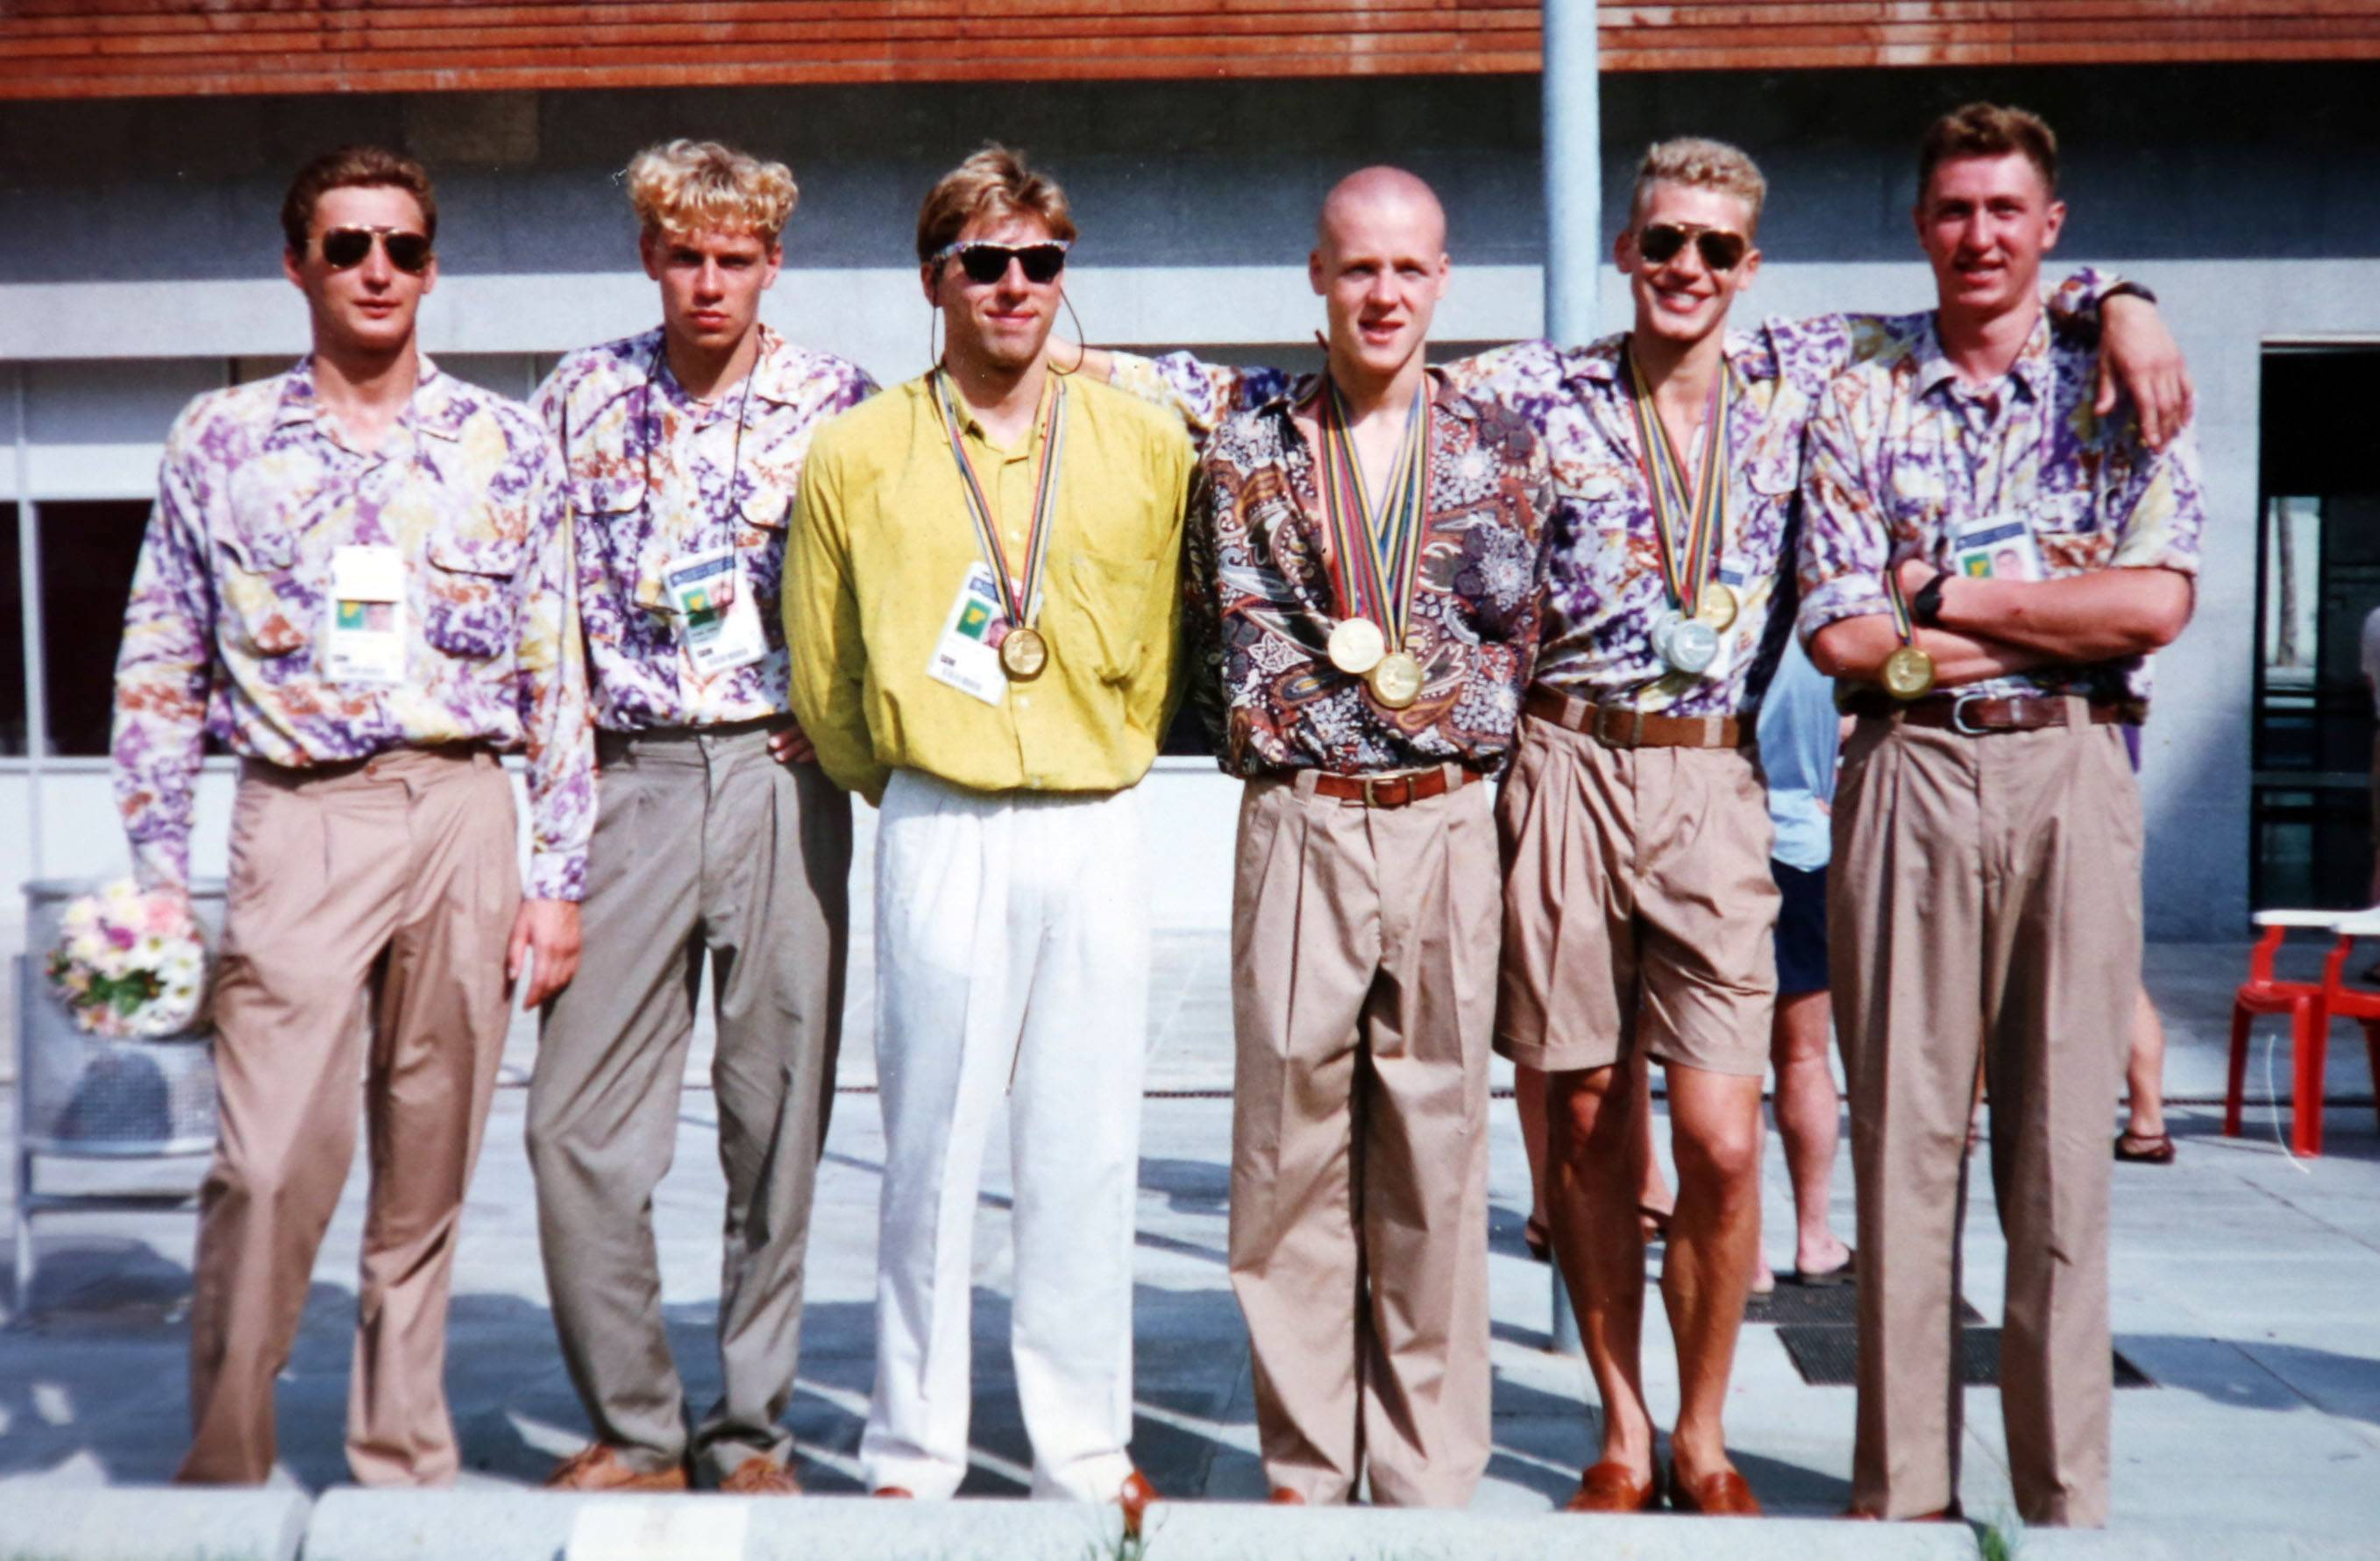 Vlad Pyshnenko, second from right, with his 4x200 Olympic gold medal relay team at the 1992 Olympic Games in Barcelona, Spain.